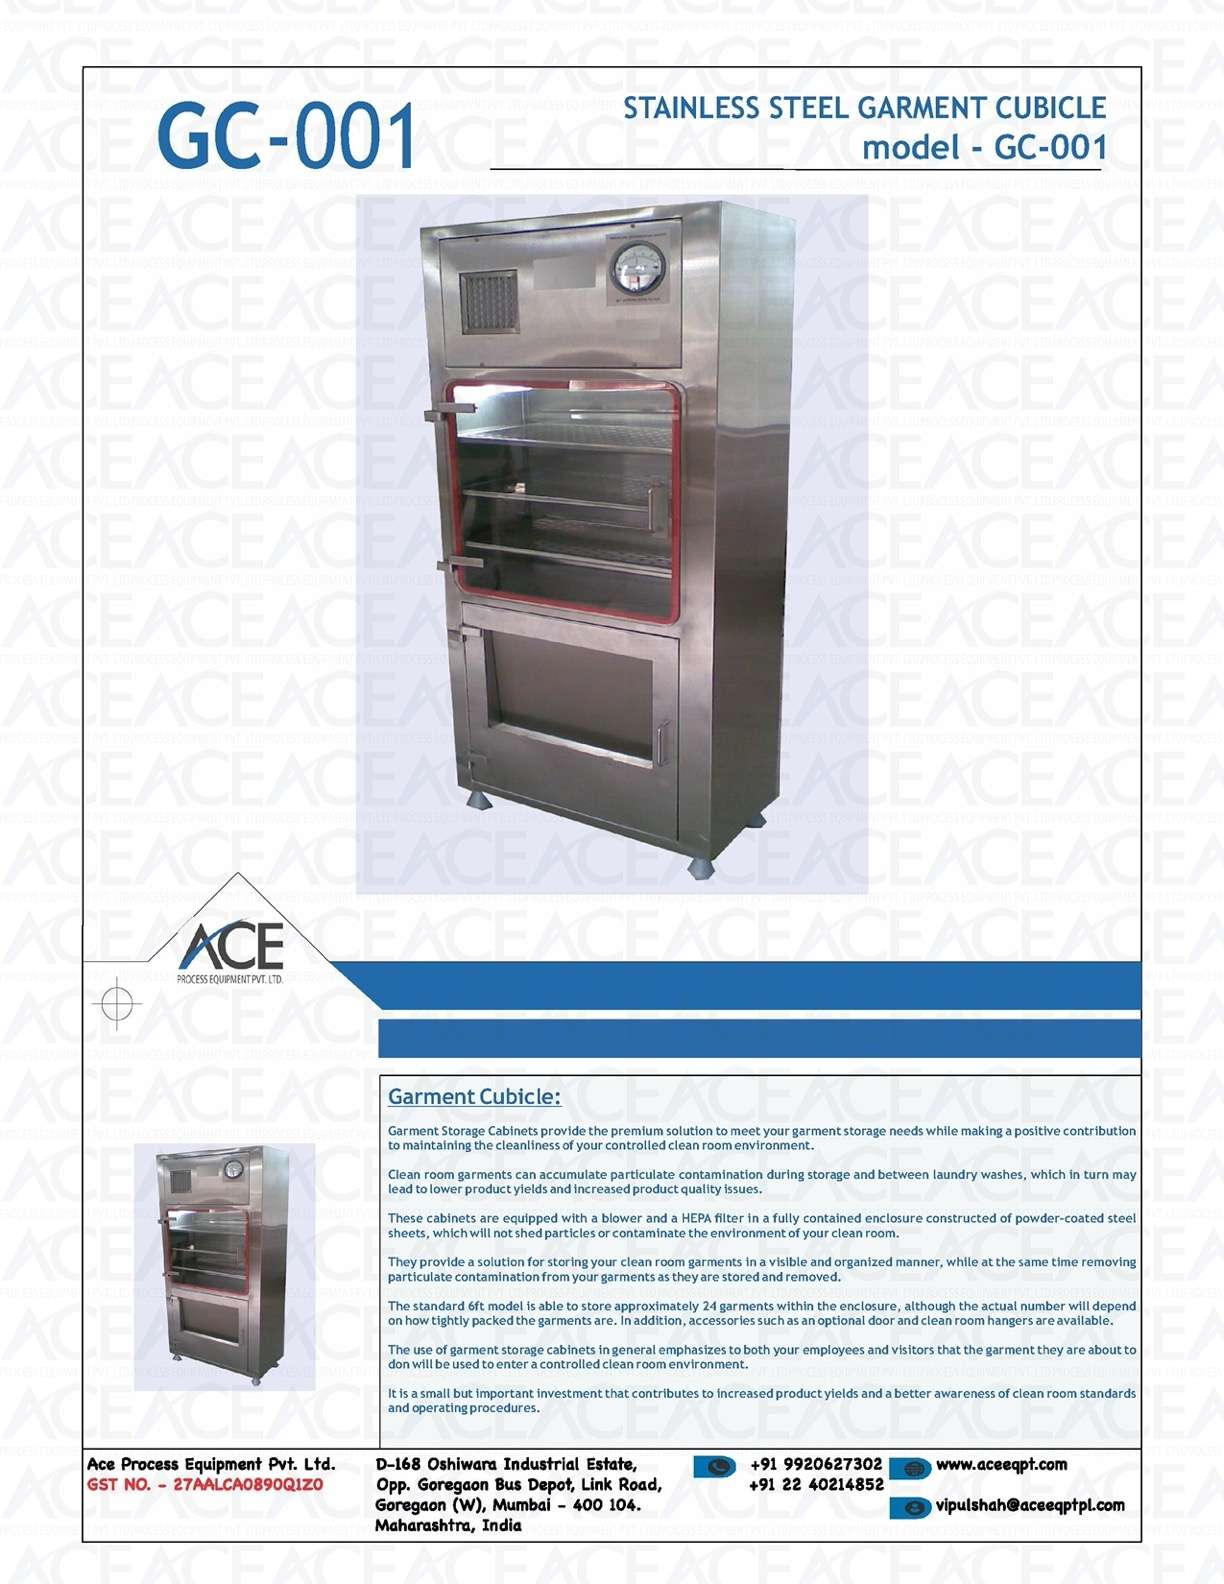 STAINLESS STEEL GARMENT CUBICLE CABINET